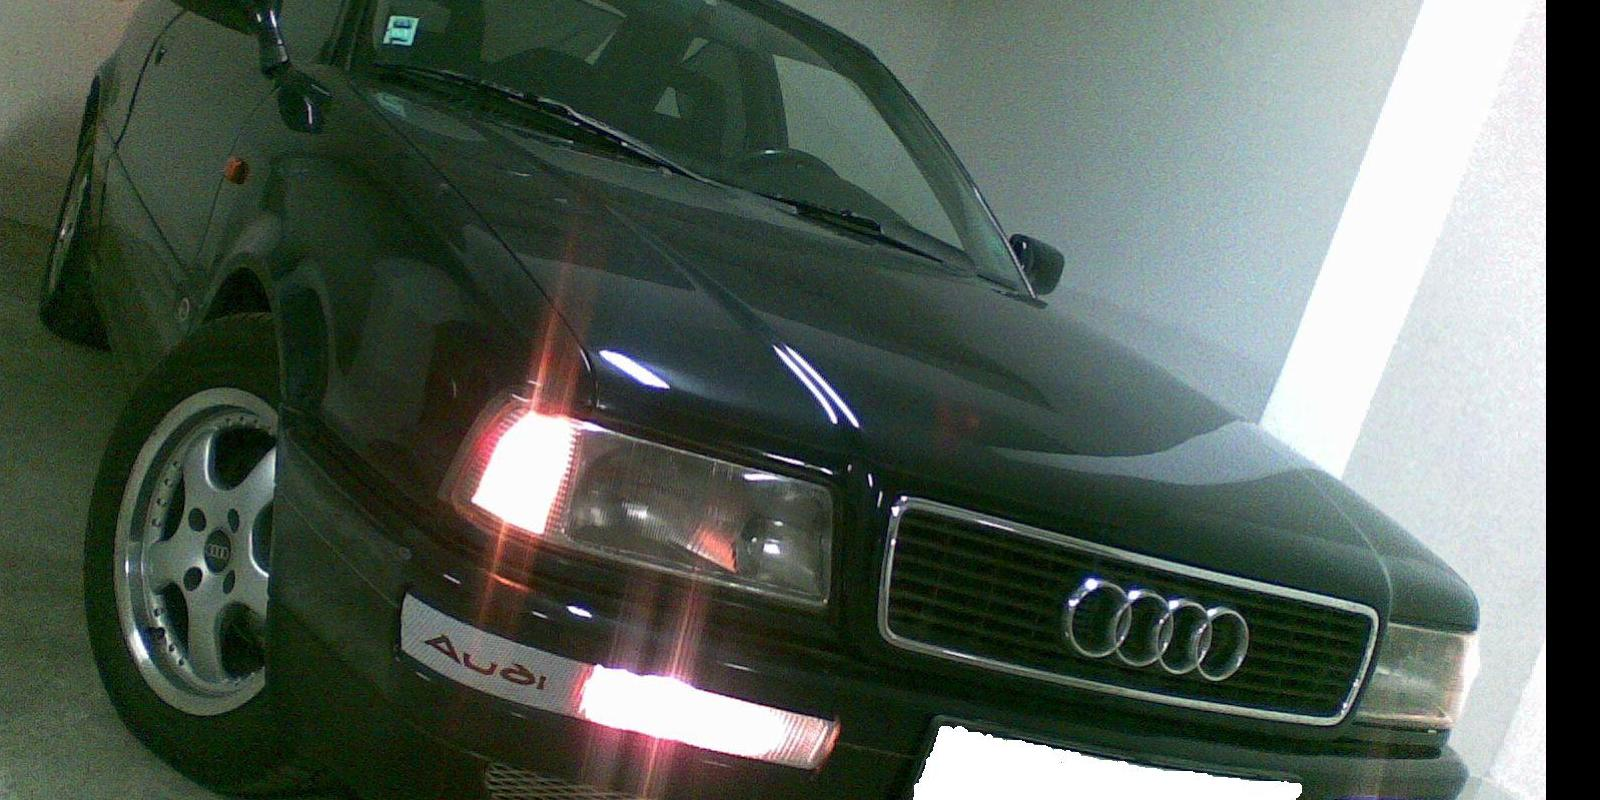 lubo_bbb 1992 Audi Coupe